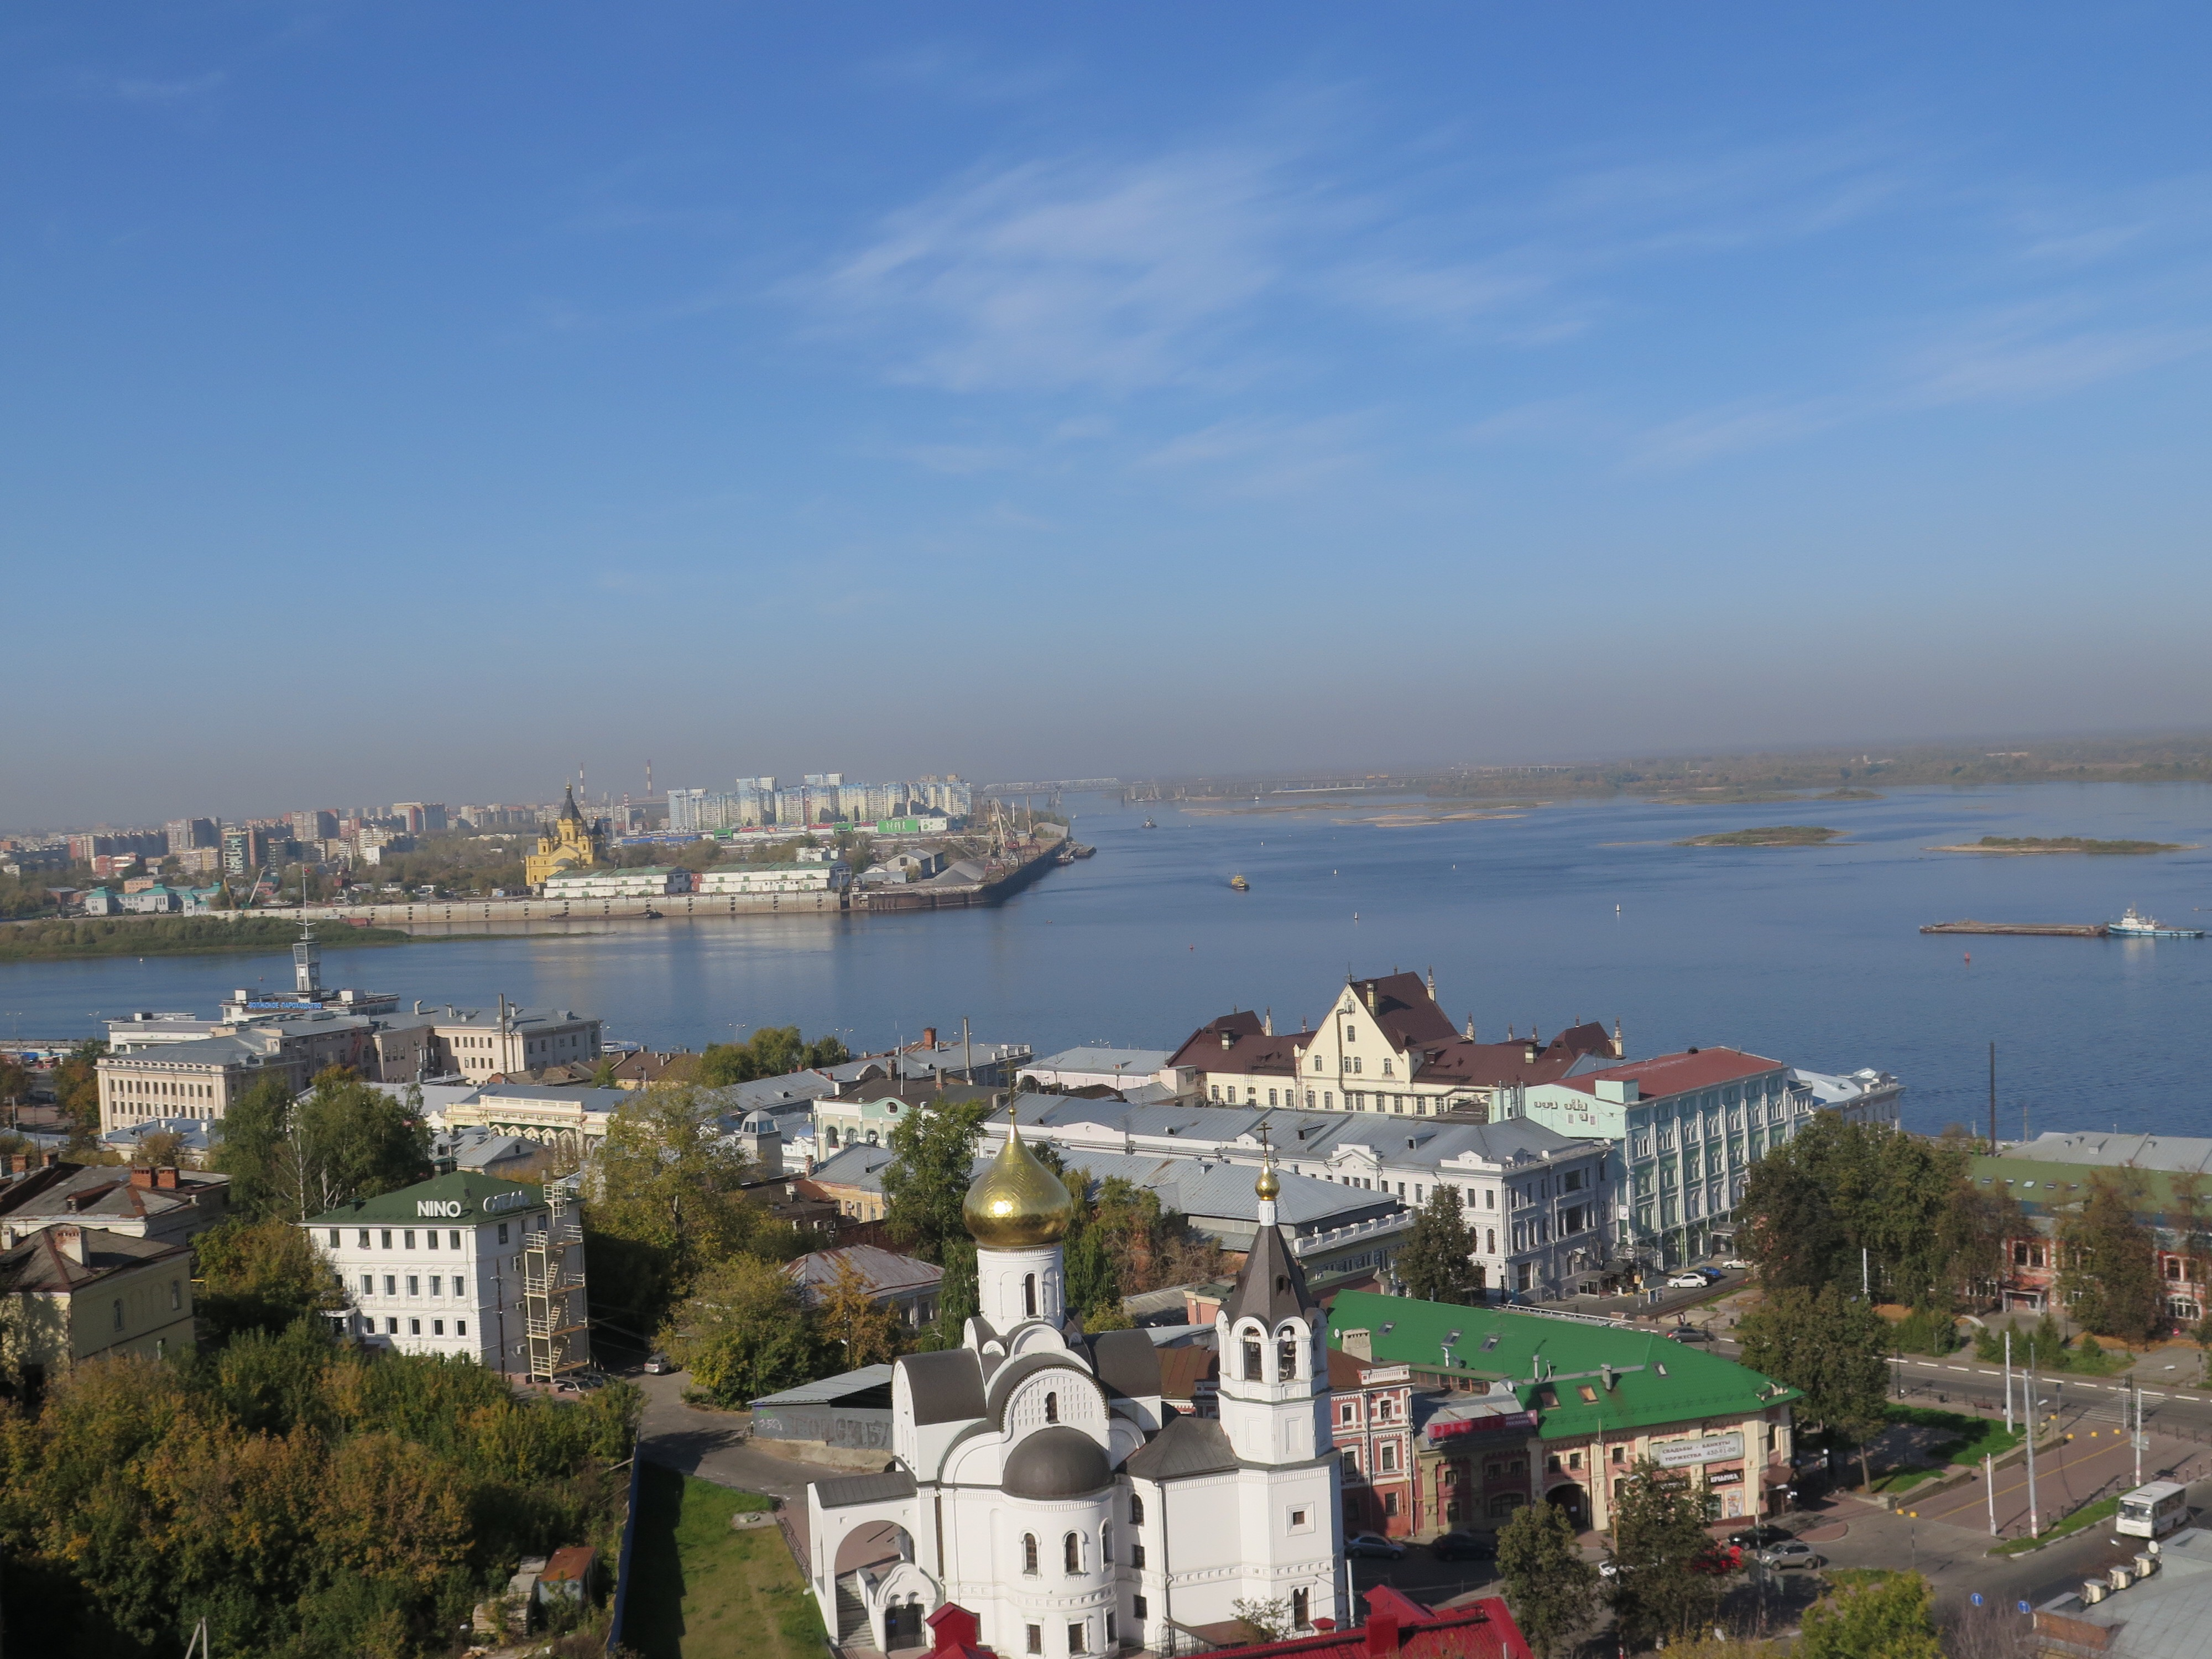 Looking out over Nizhny Novgorod from the kremlin wall. Nizhny is on teh bank of the Volga.